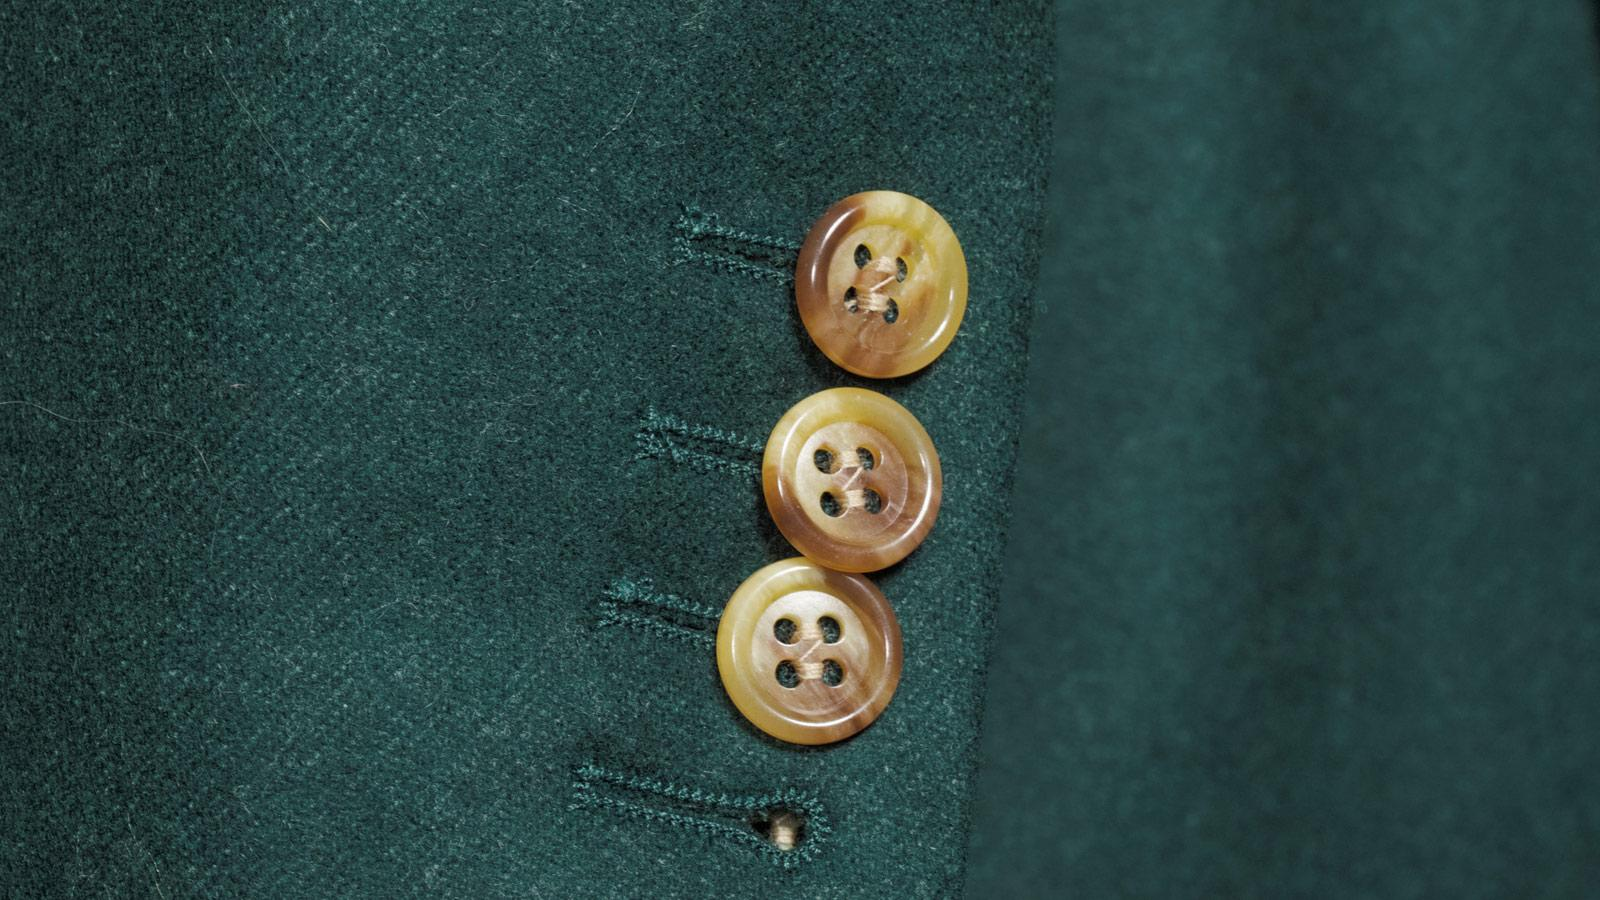 Green Wool Flannel Suit - slider image 1